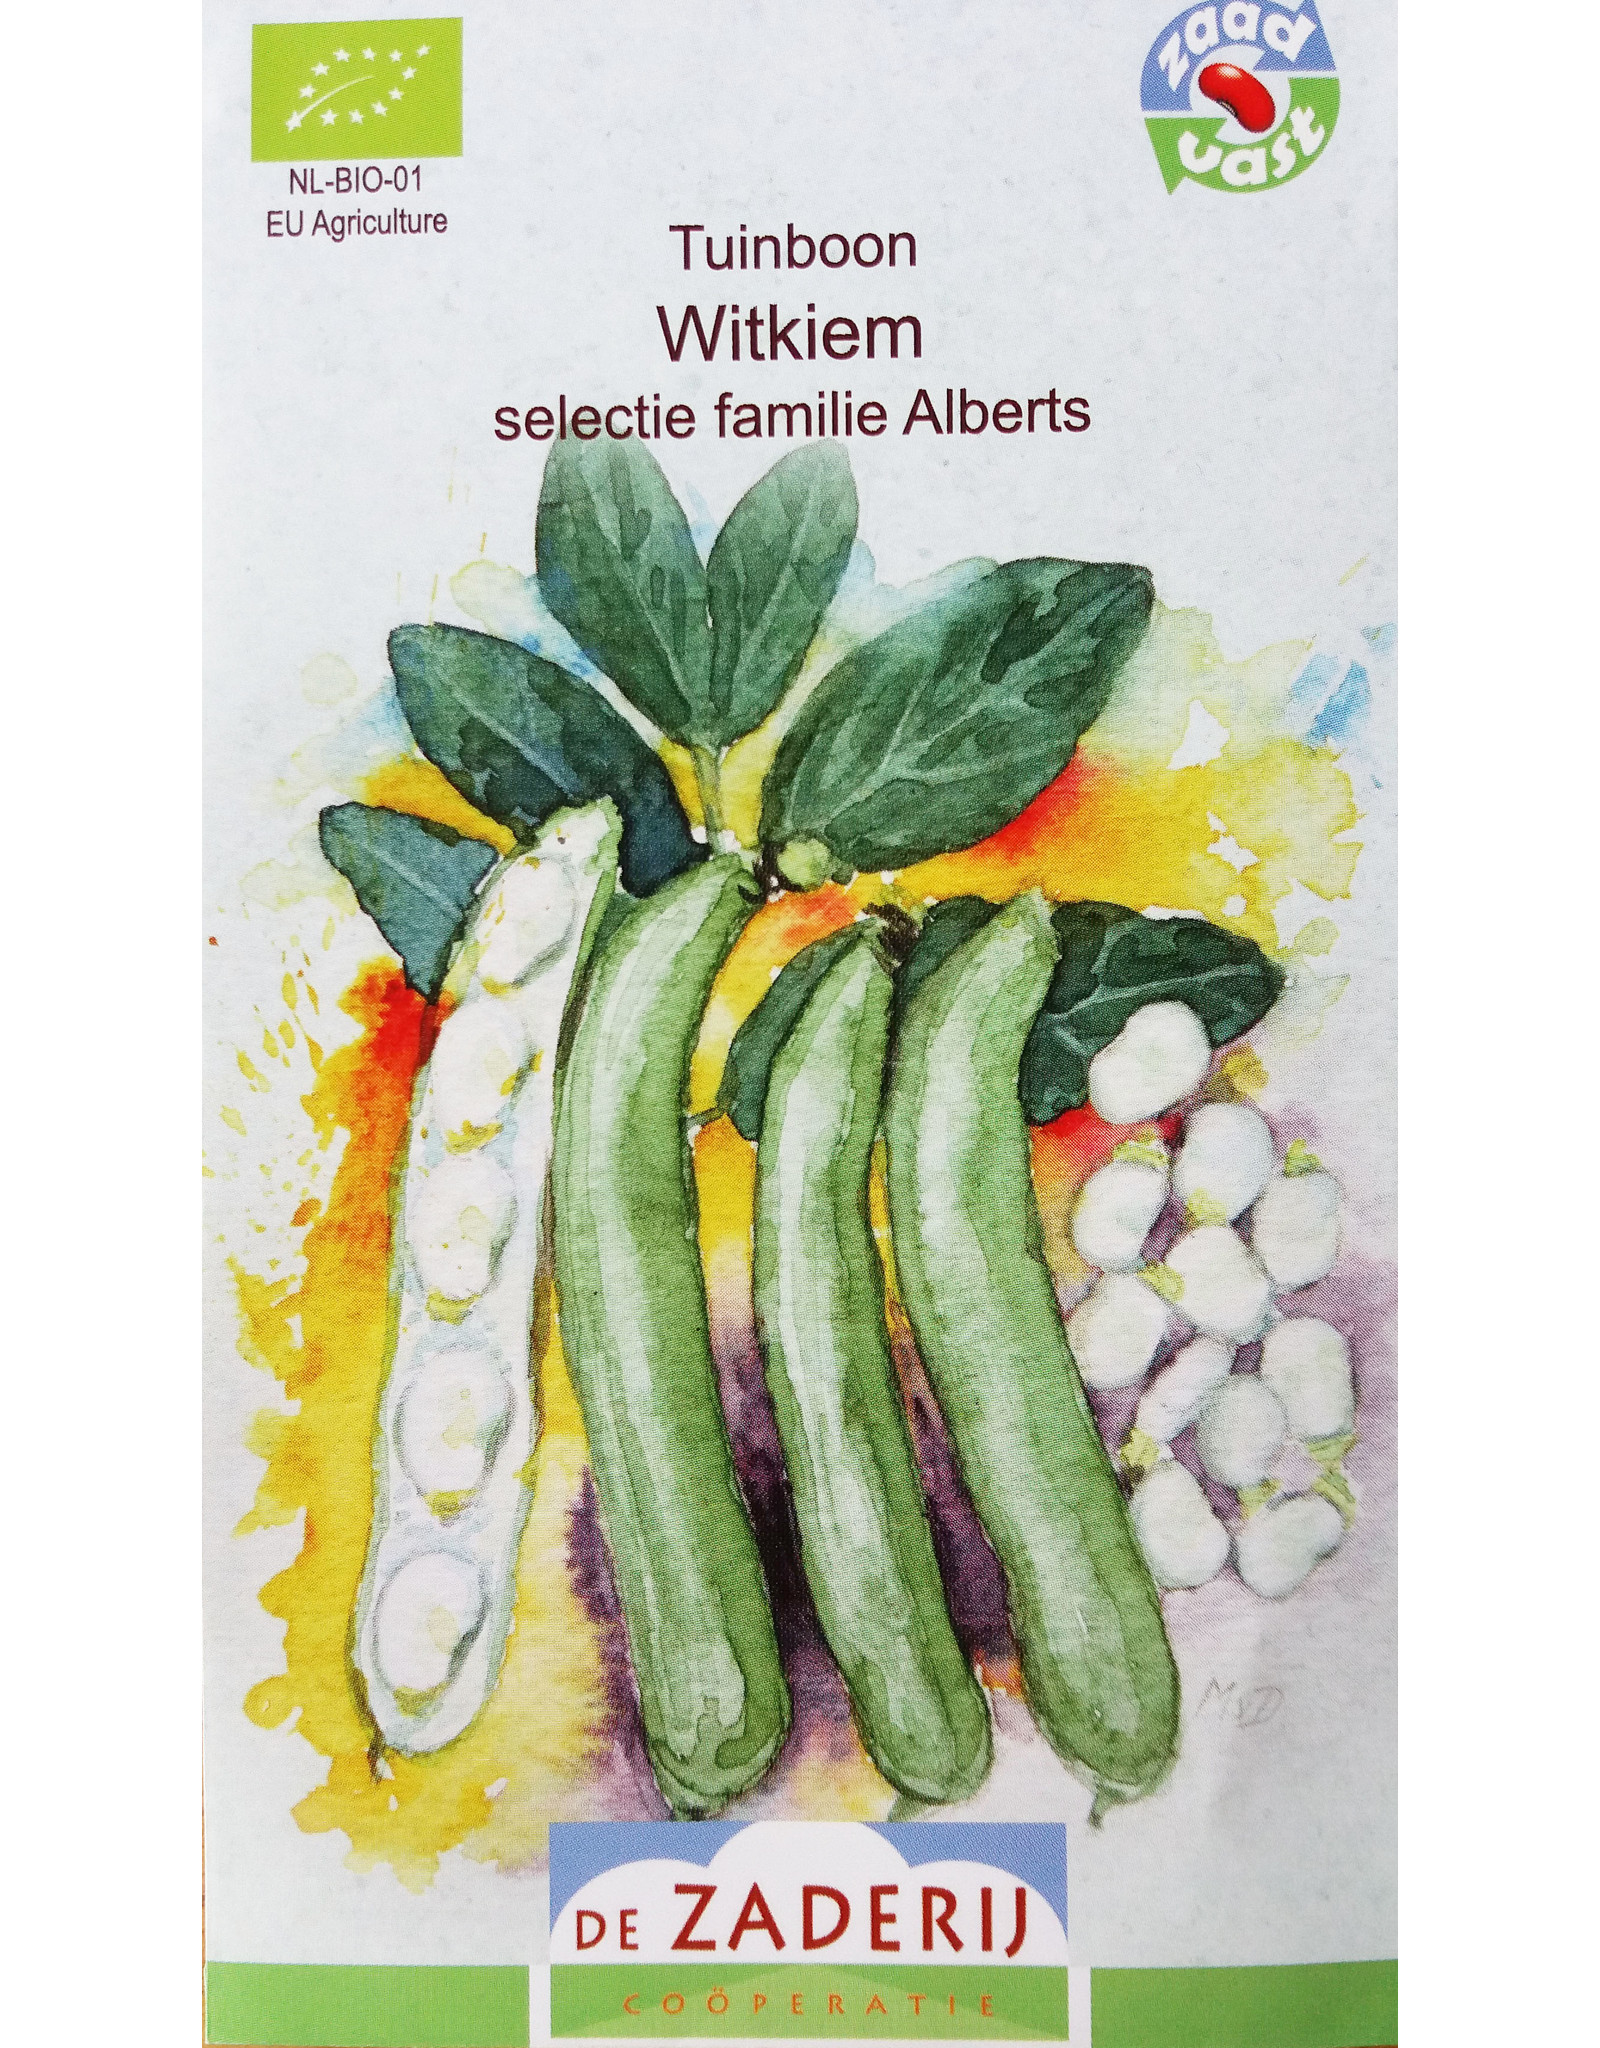 Tuinboon Witkiem selectie familie Alberts